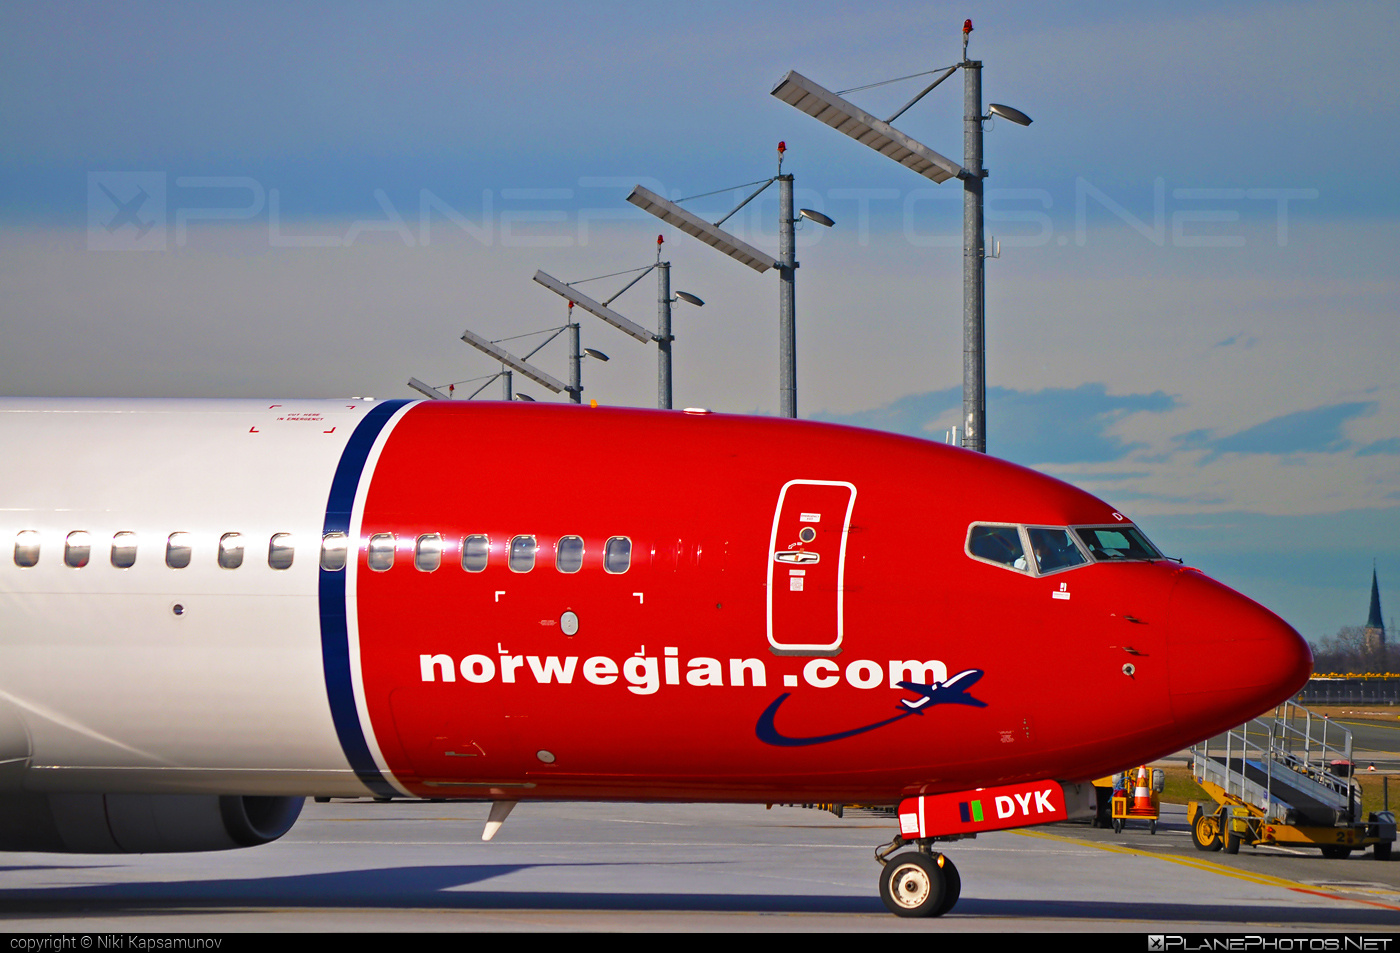 Boeing 737-800 - LN-DYK operated by Norwegian Air Shuttle #b737 #b737nextgen #b737ng #boeing #boeing737 #norwegian #norwegianair #norwegianairshuttle